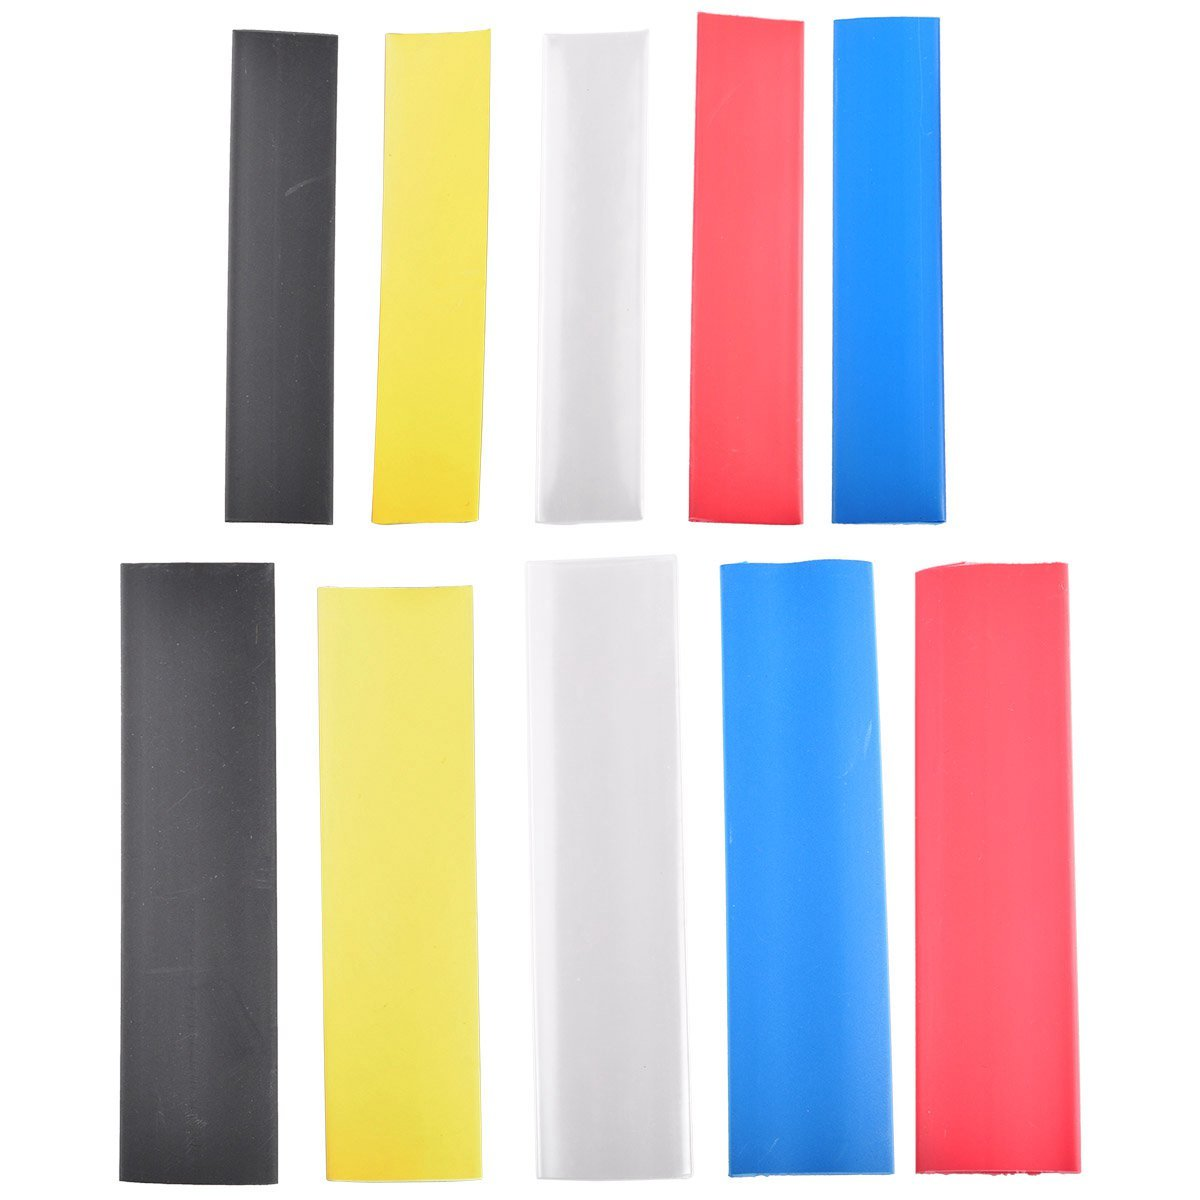 All Colours Φ15mm Heatshrink 2:1 Tube Tubing Sleeve Sleeving Wrap Wire Cable